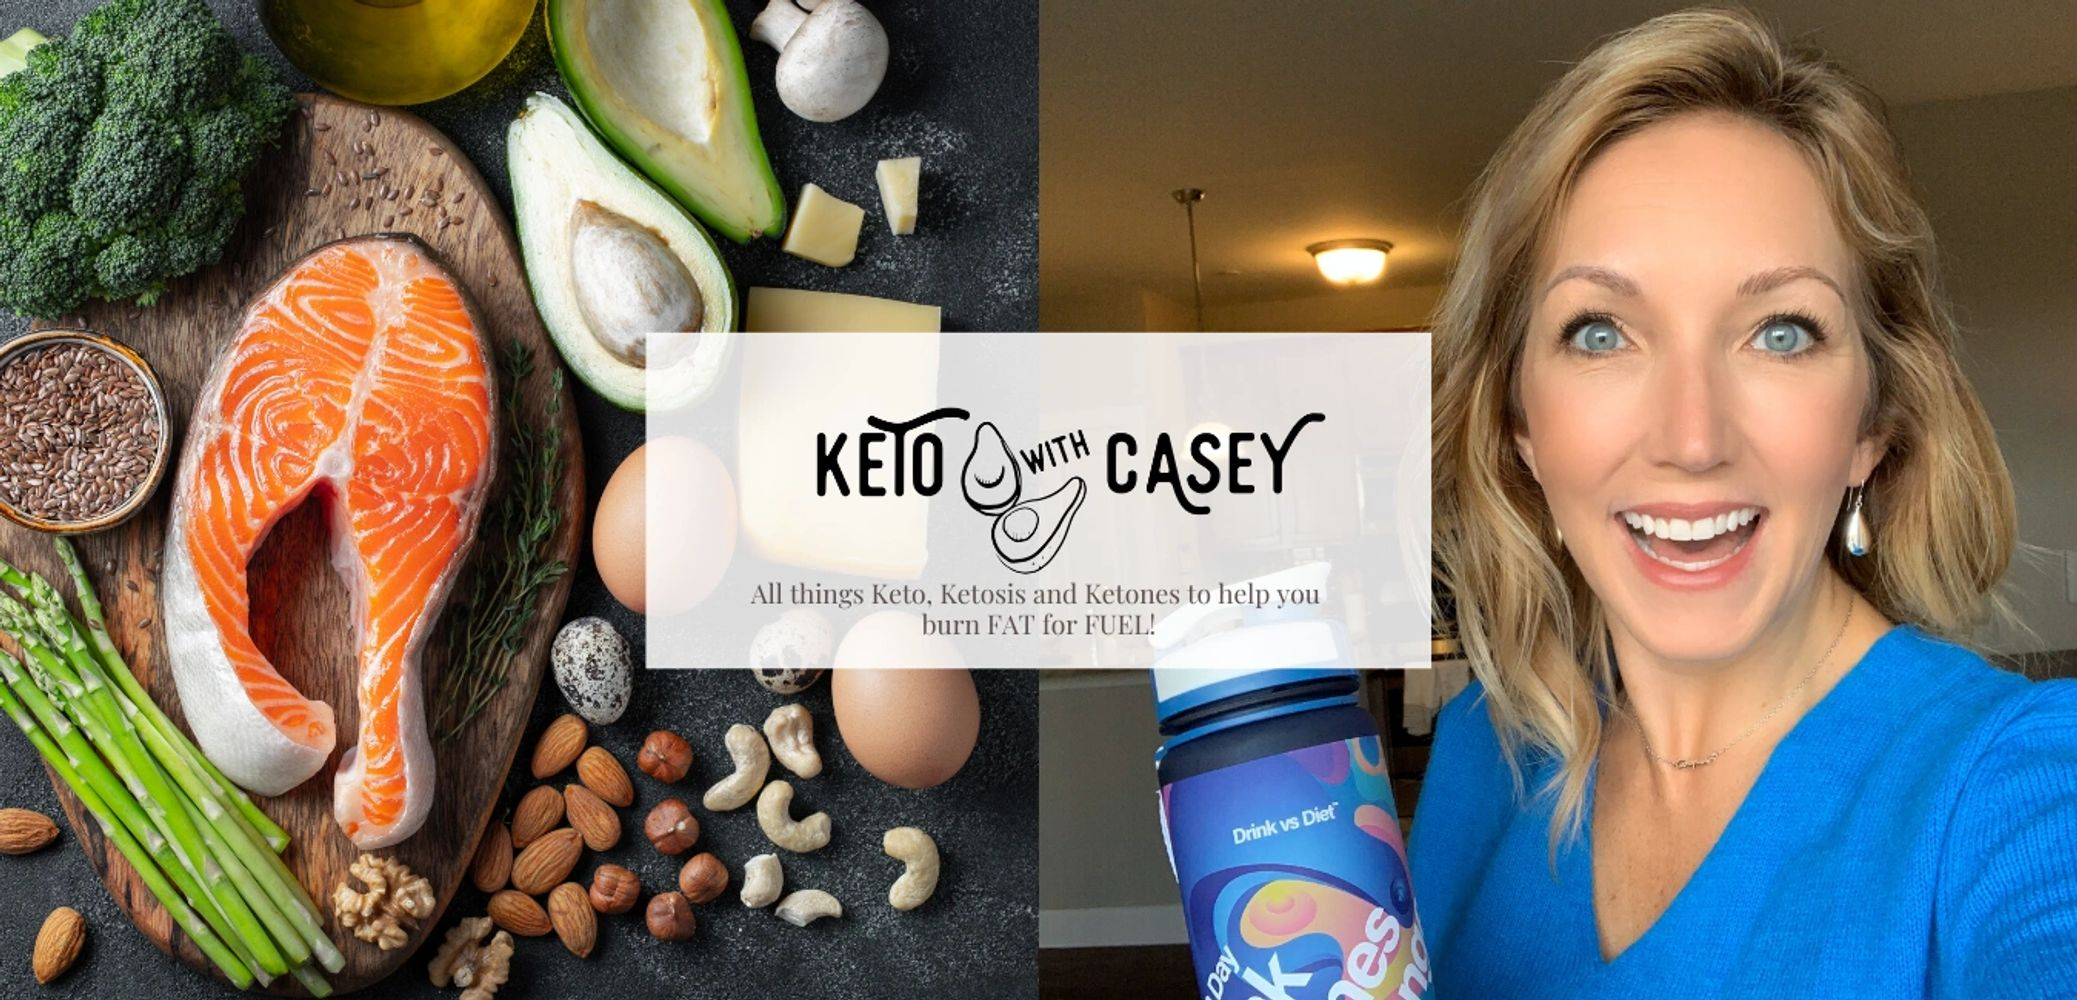 Keto with Casey